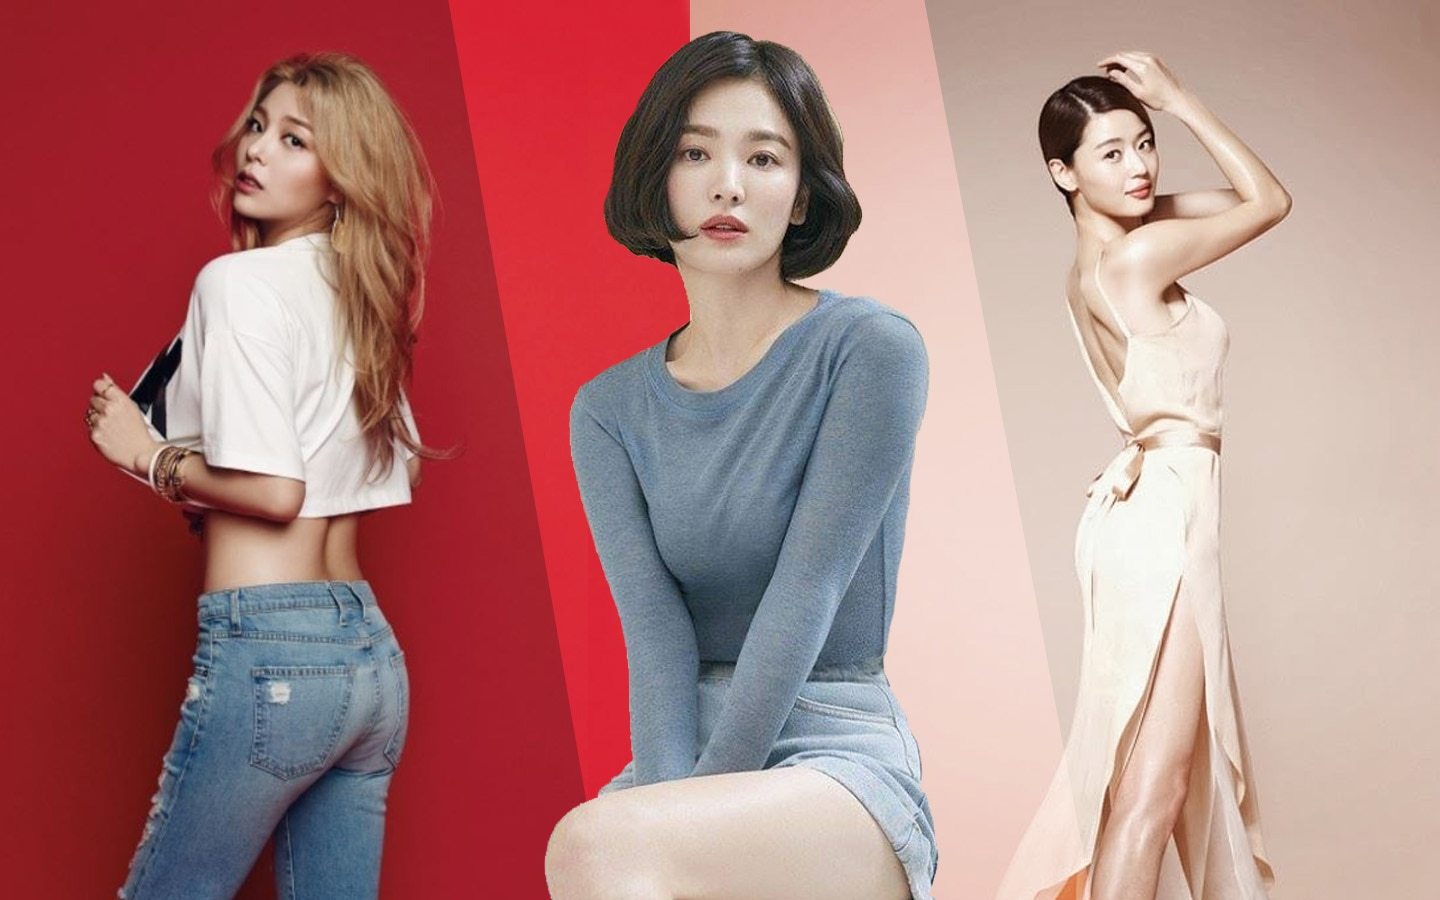 In Photos Korean Actresses And K Pop Idols Reveal Their Workout And Diet Secrets Metro Style